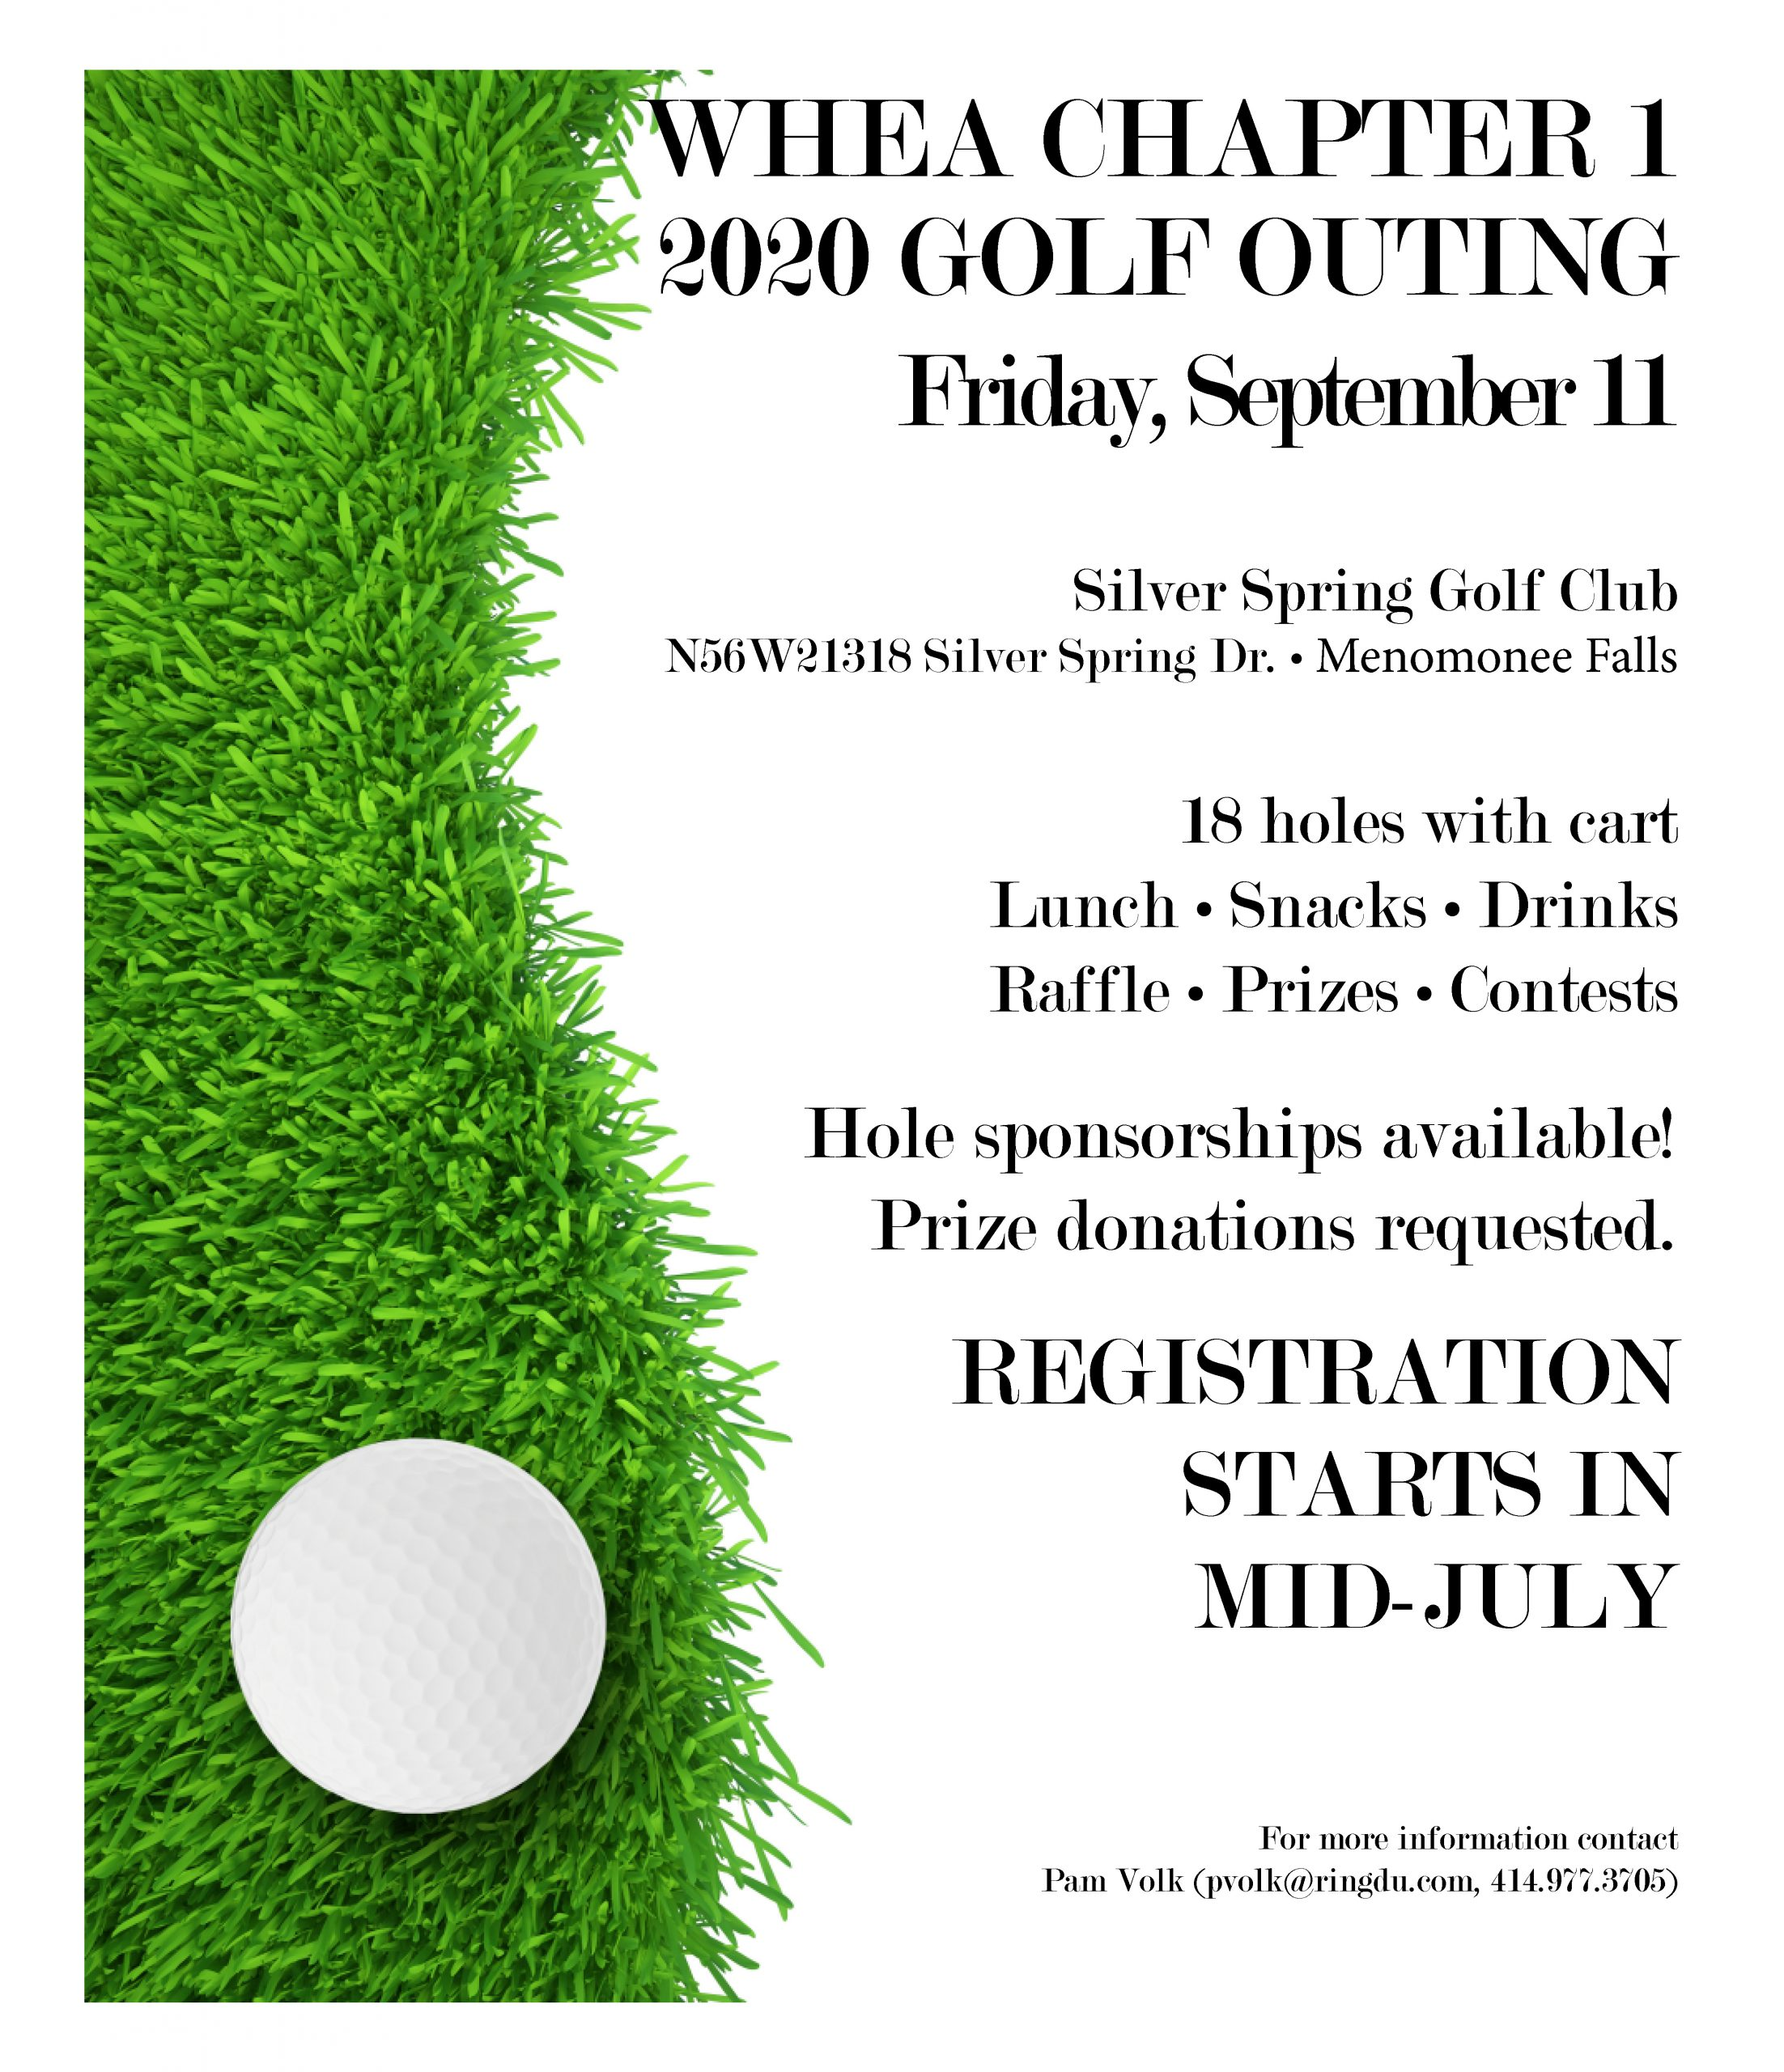 WHEA Chapter 1 Golf 2020 Flier